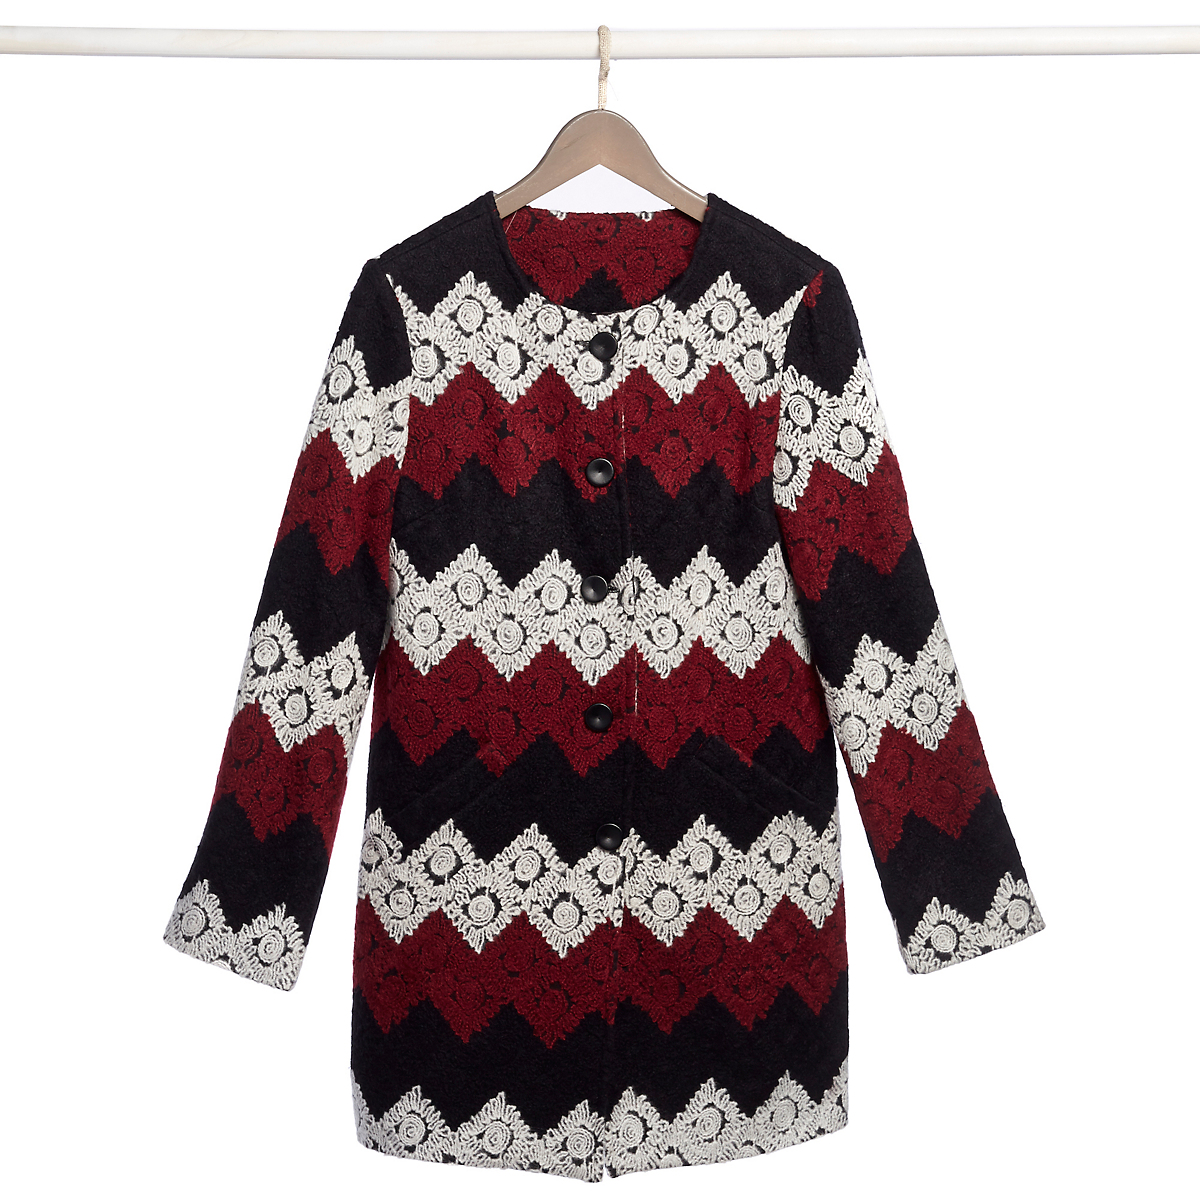 Chevron Embroidered Coat